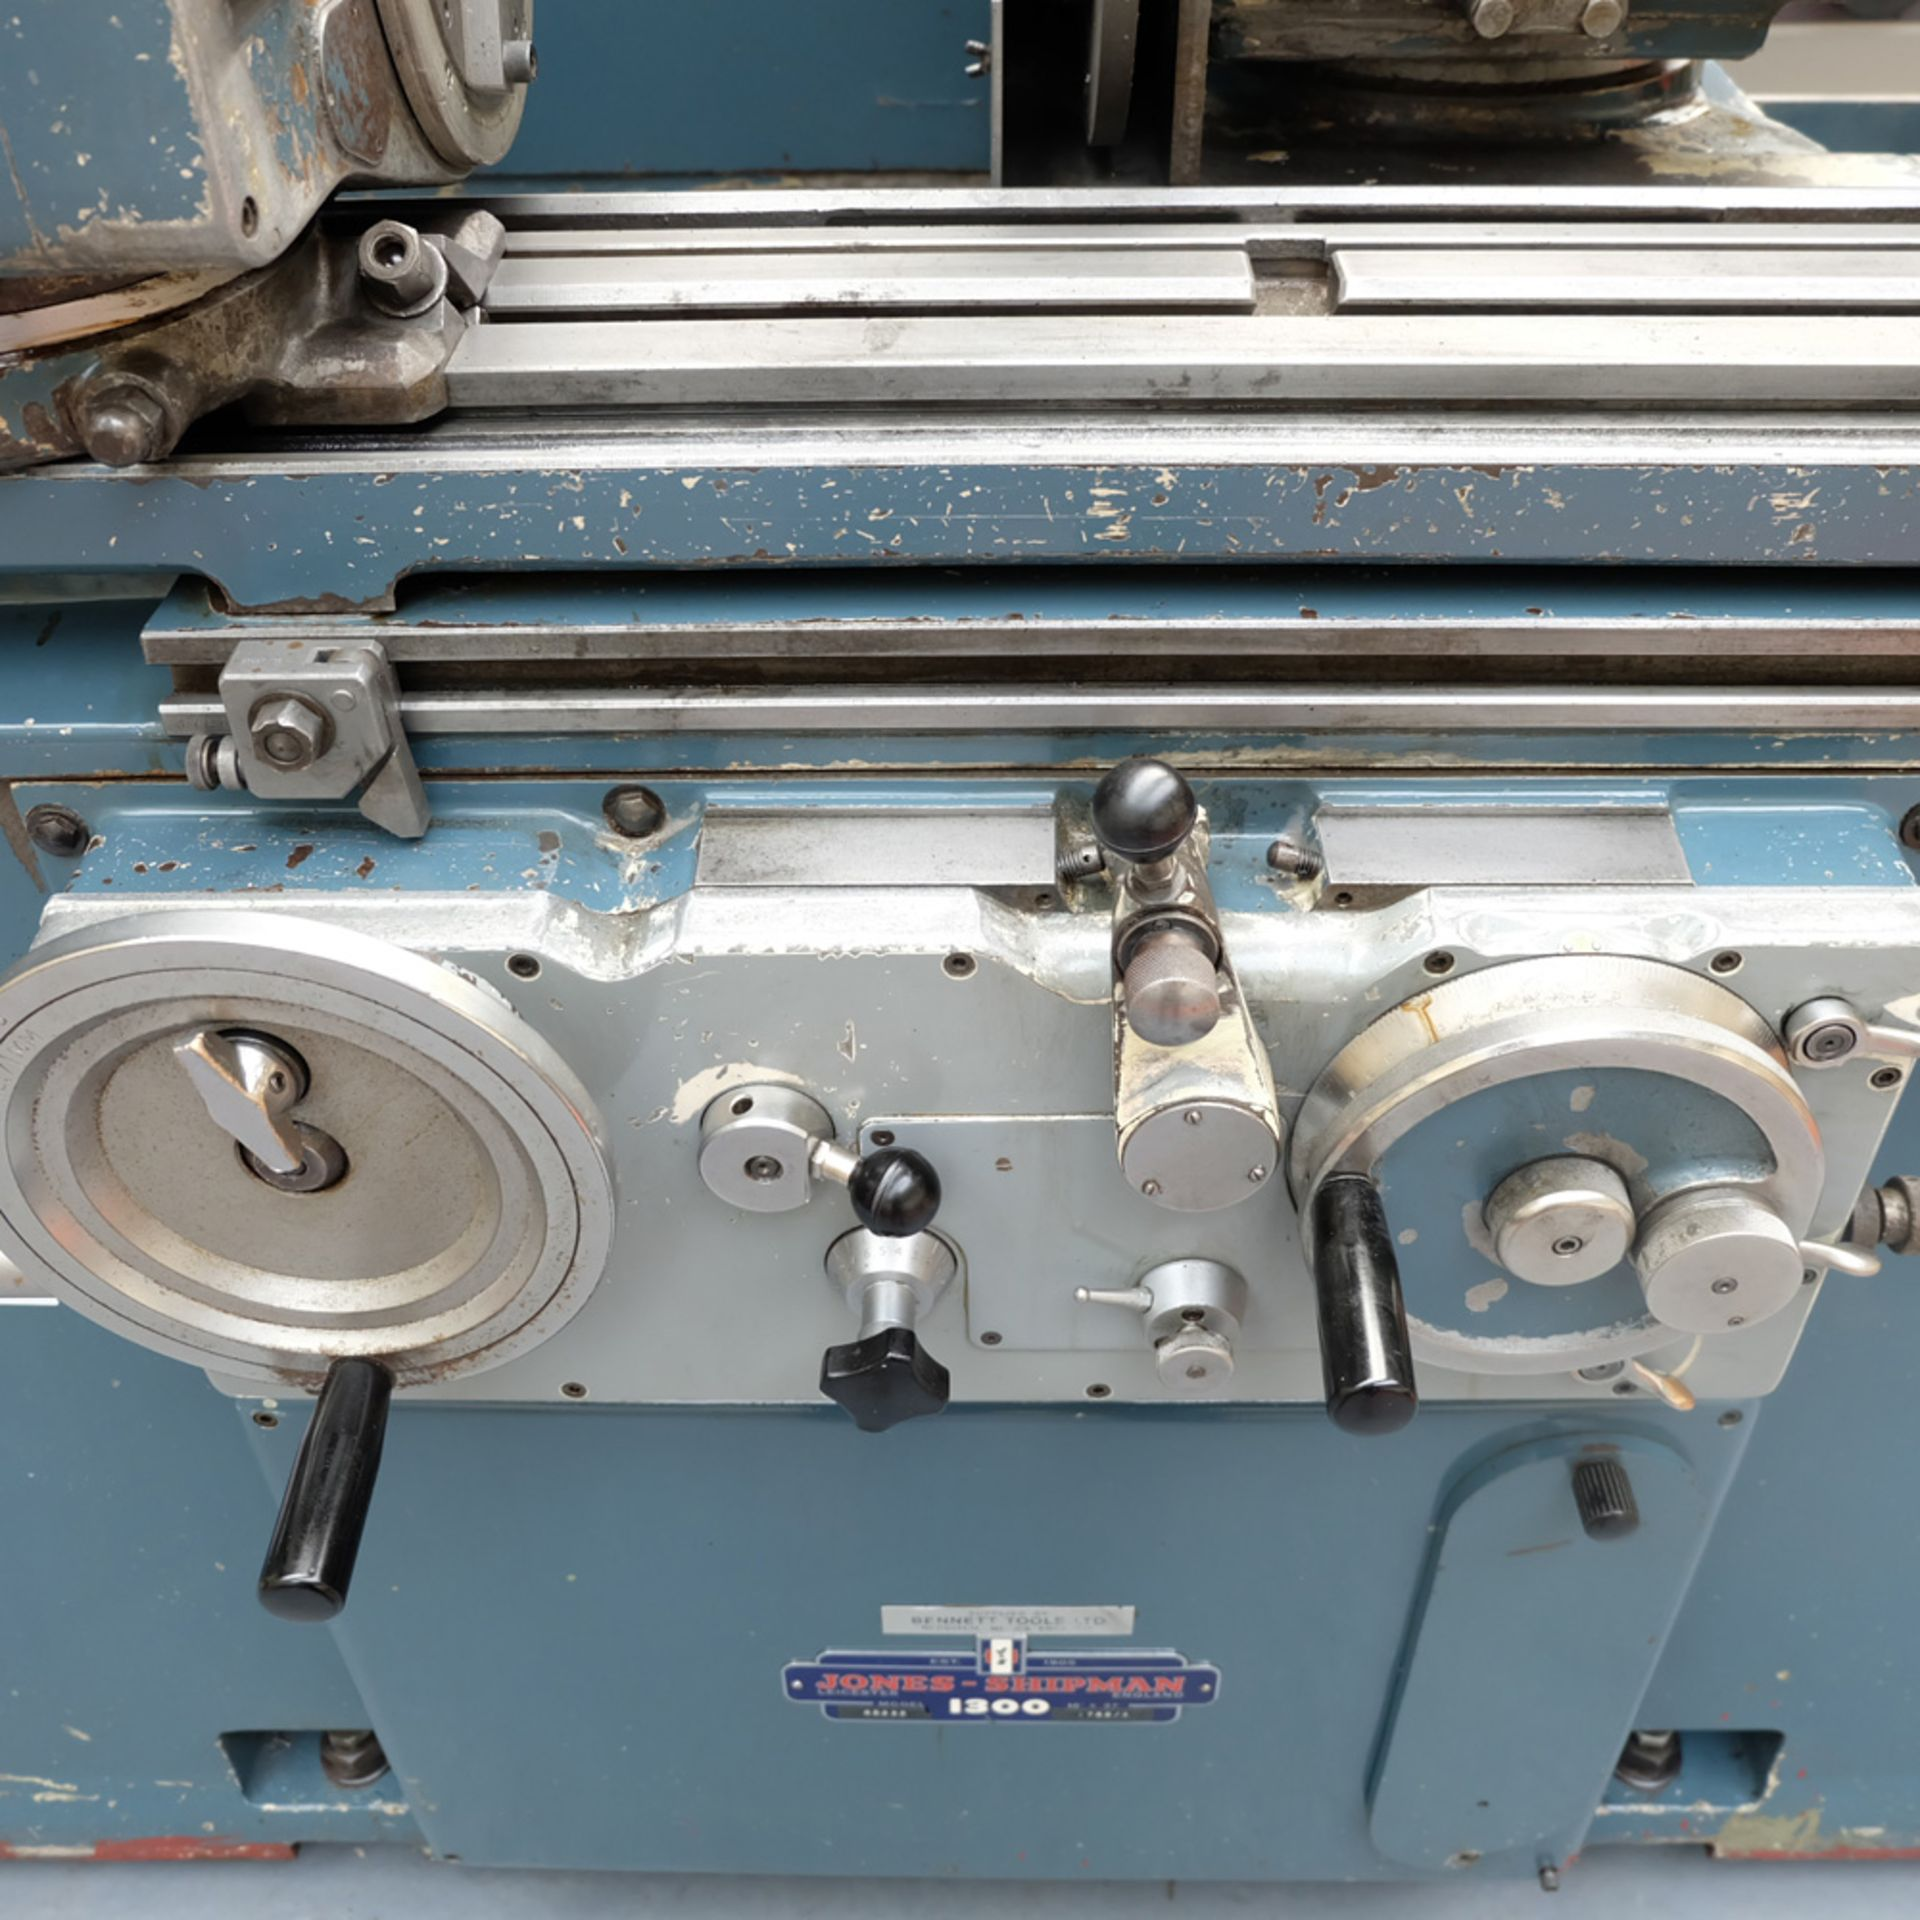 Jones & Shipman Type 1300 Cylindrical Grinder - Image 3 of 15